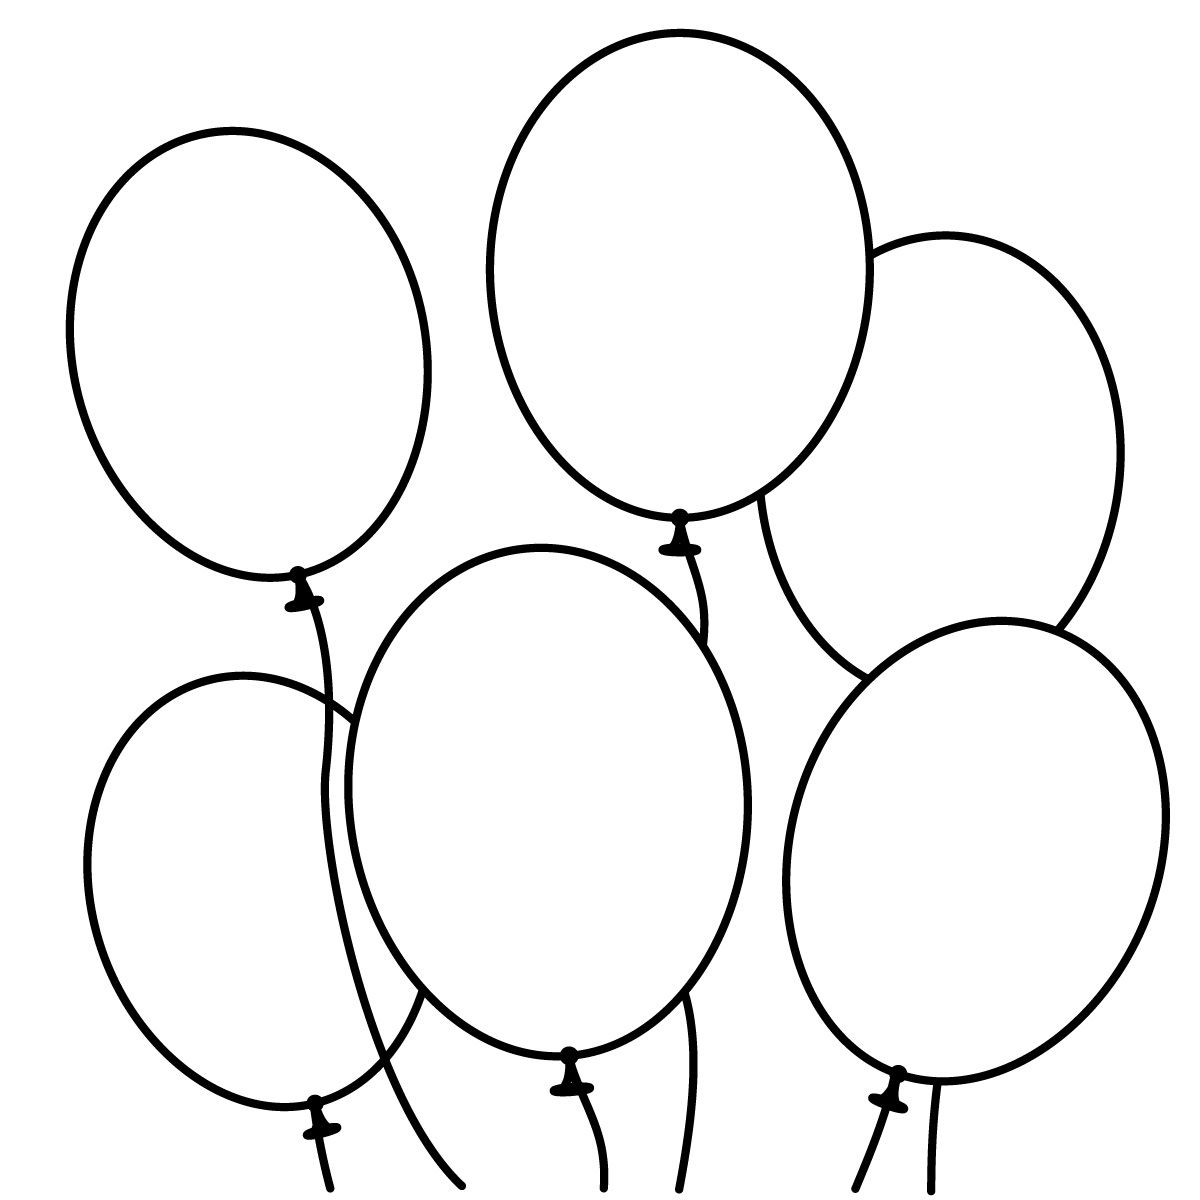 Outline clipart balloon. Snowmen black and white